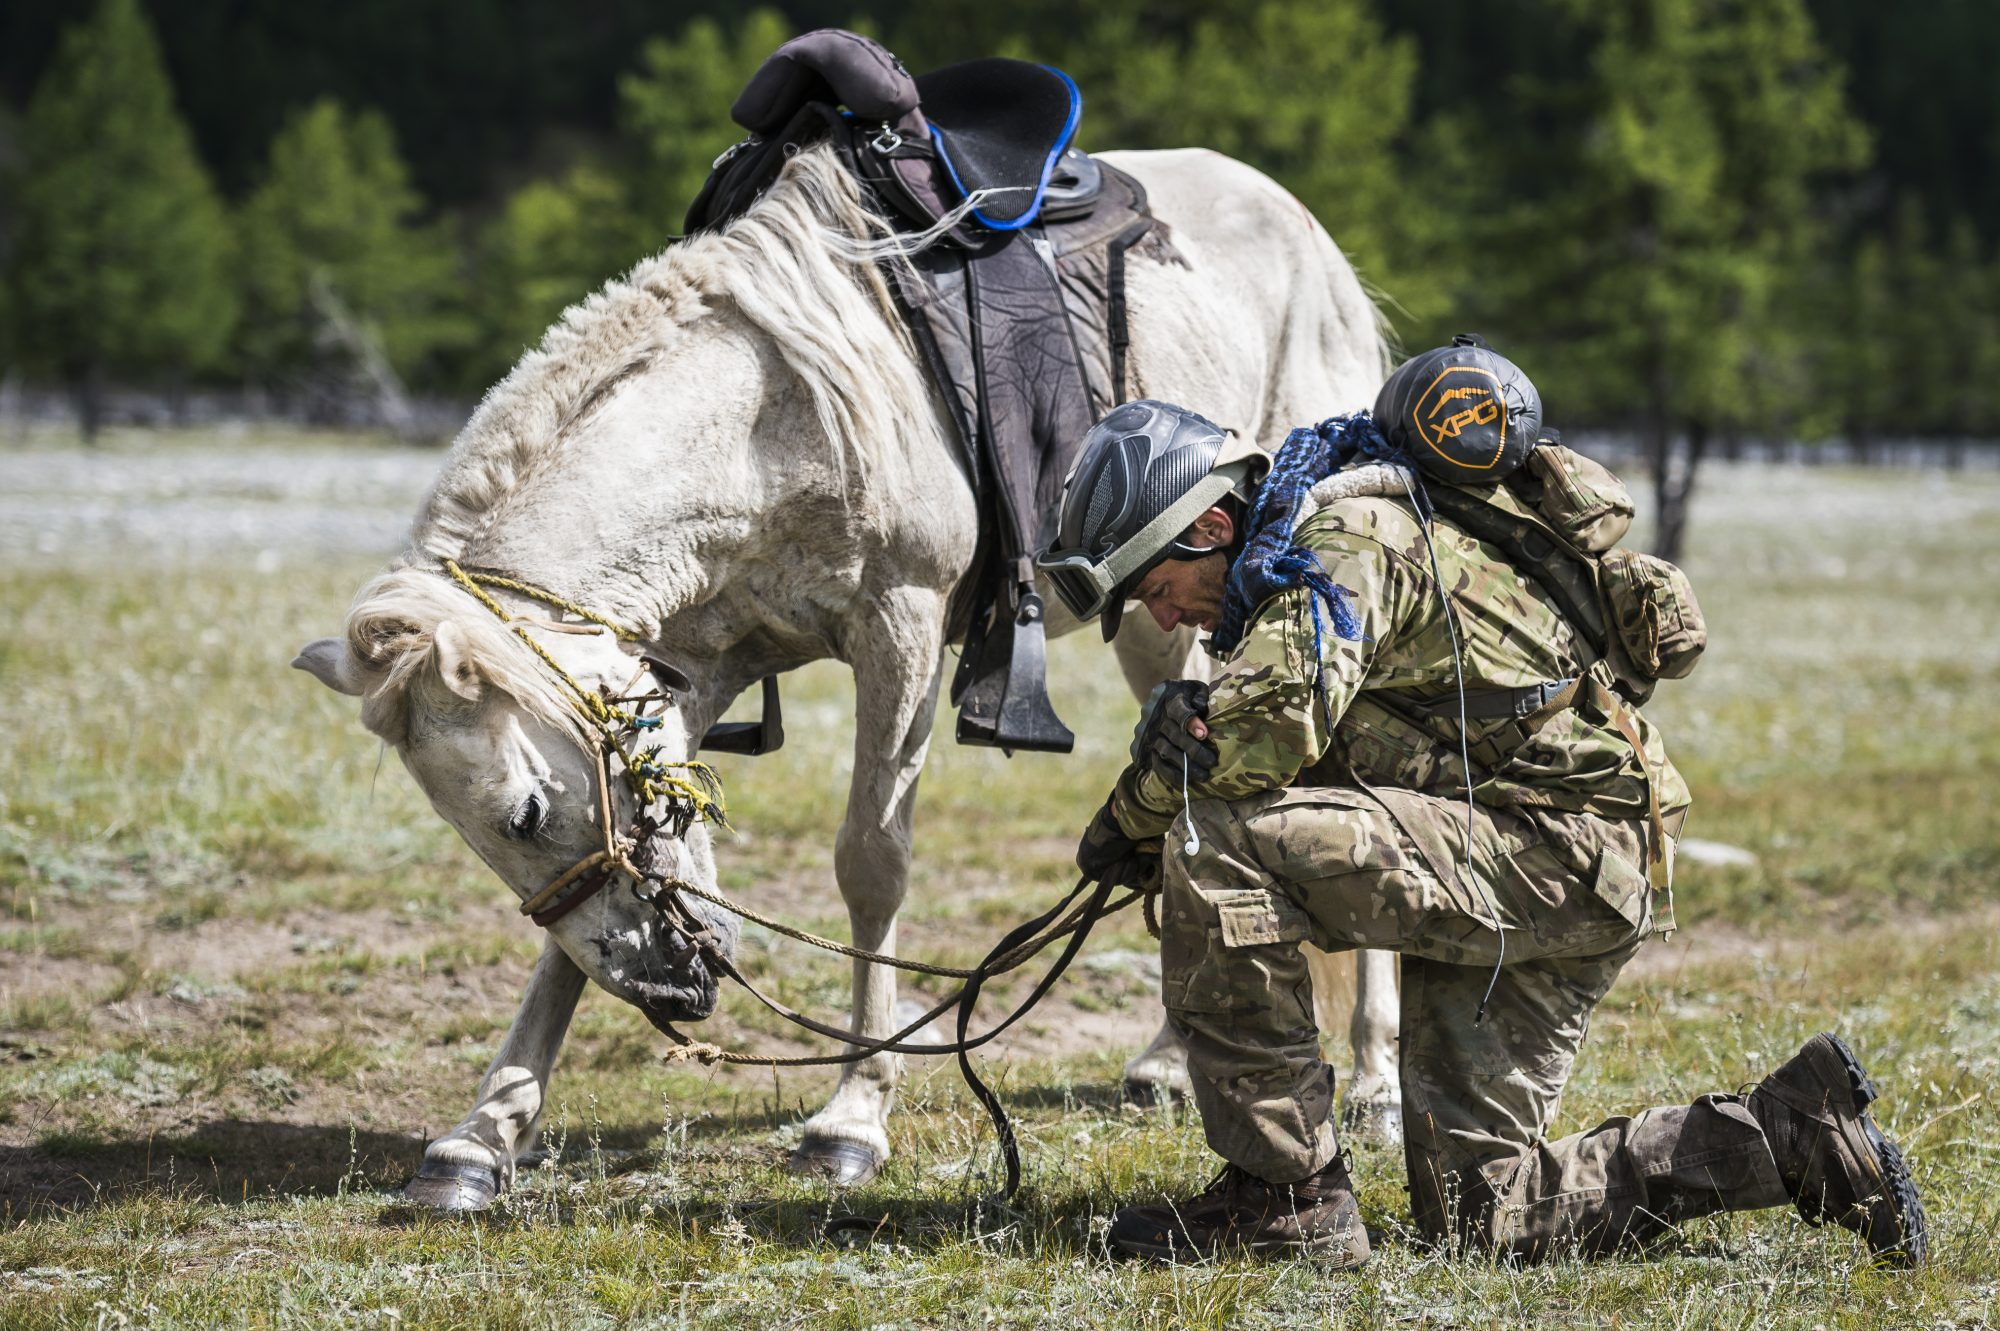 Capt Finley kneels in prayer with his horse at the Mongol Derby finish line.